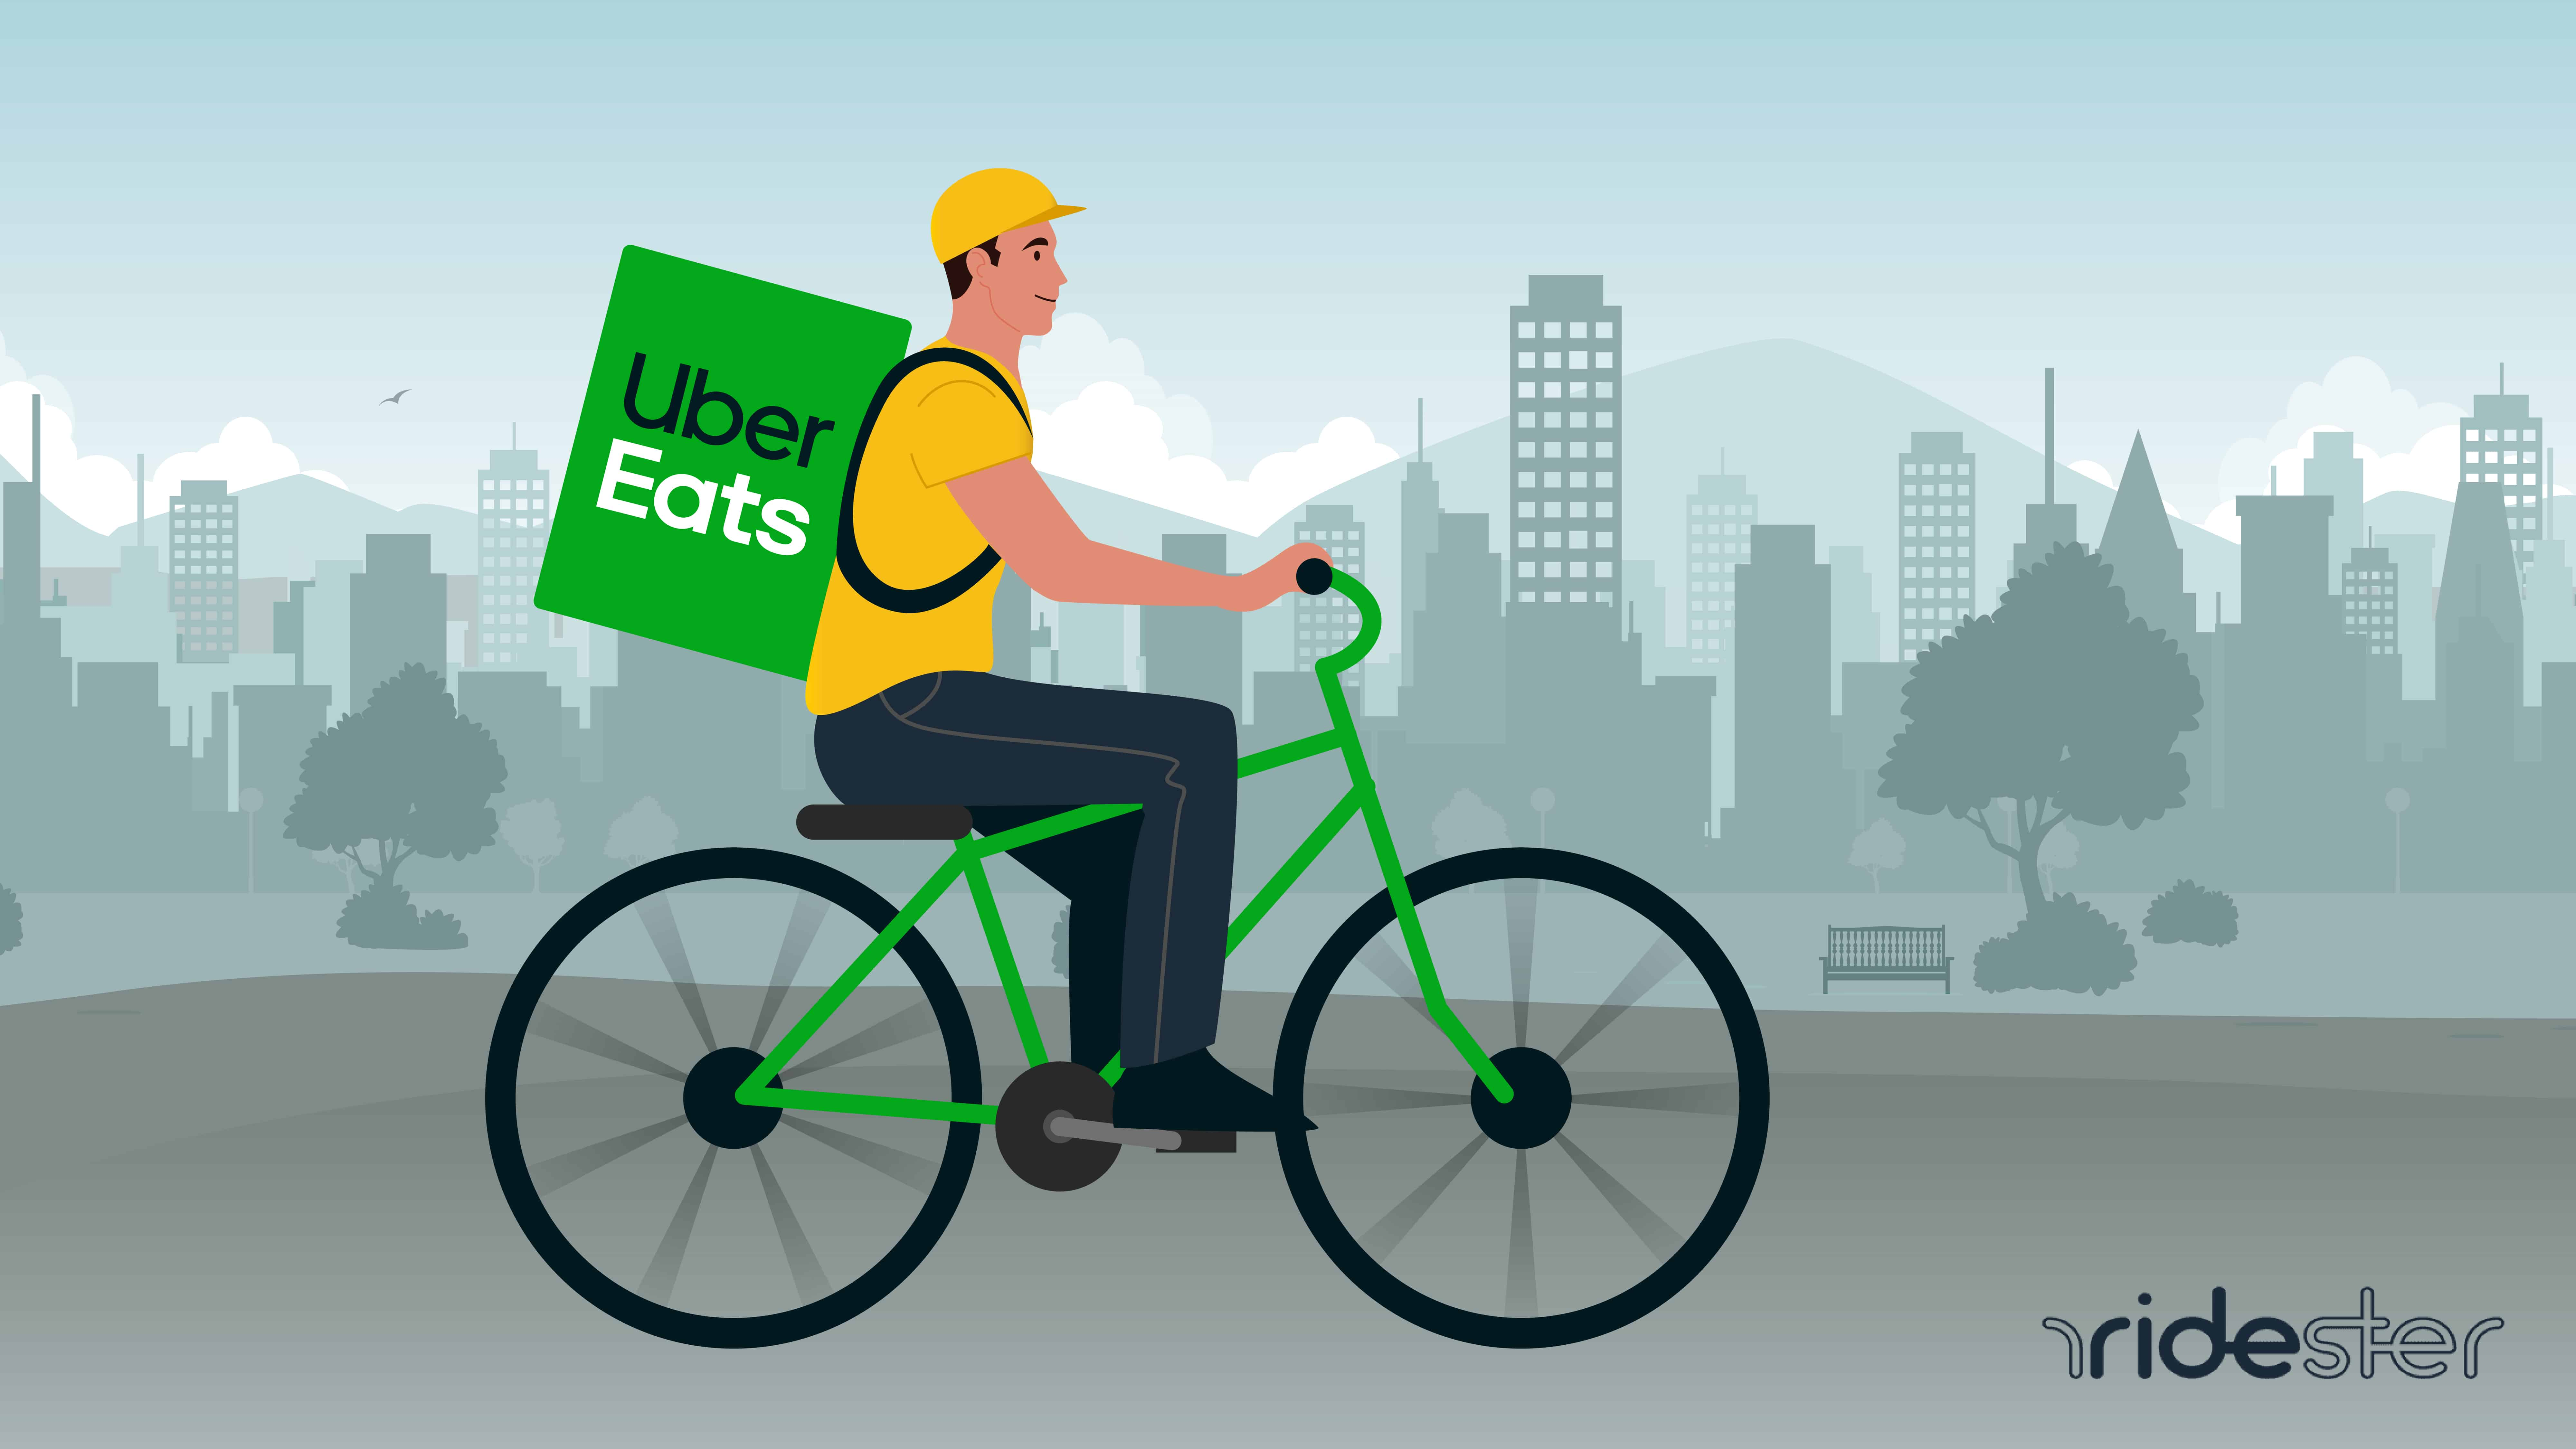 vector graphic of a man riding an uber eats bicycle